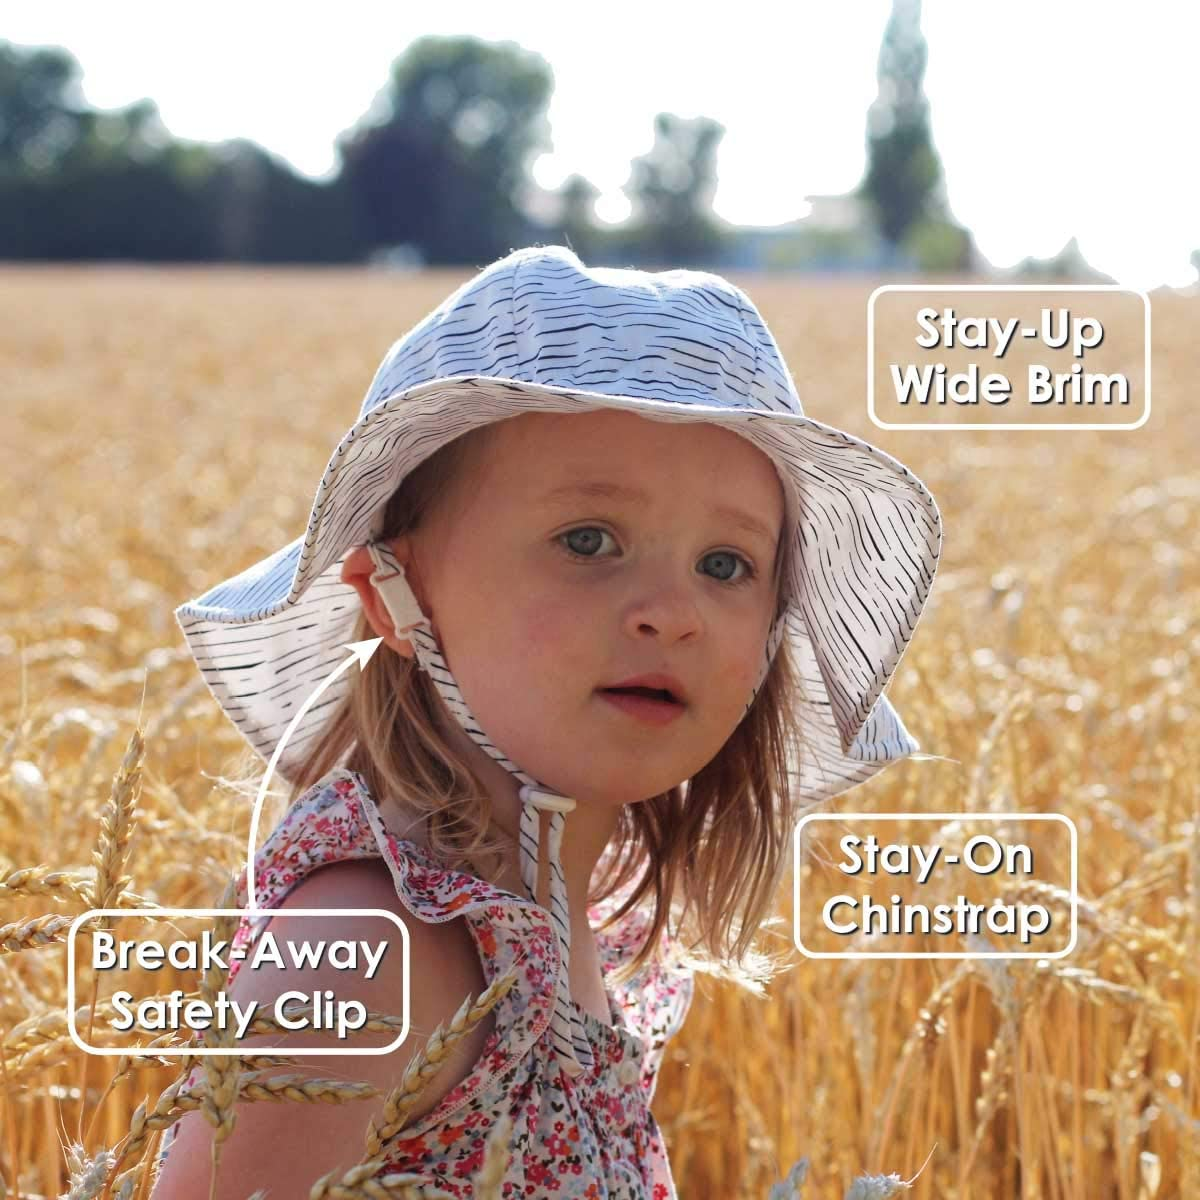 UPF 50 Adjustable Straps Jan /& Jul GRO-with-Me Girls Sun-Hat for Baby Toddler Kids Protection